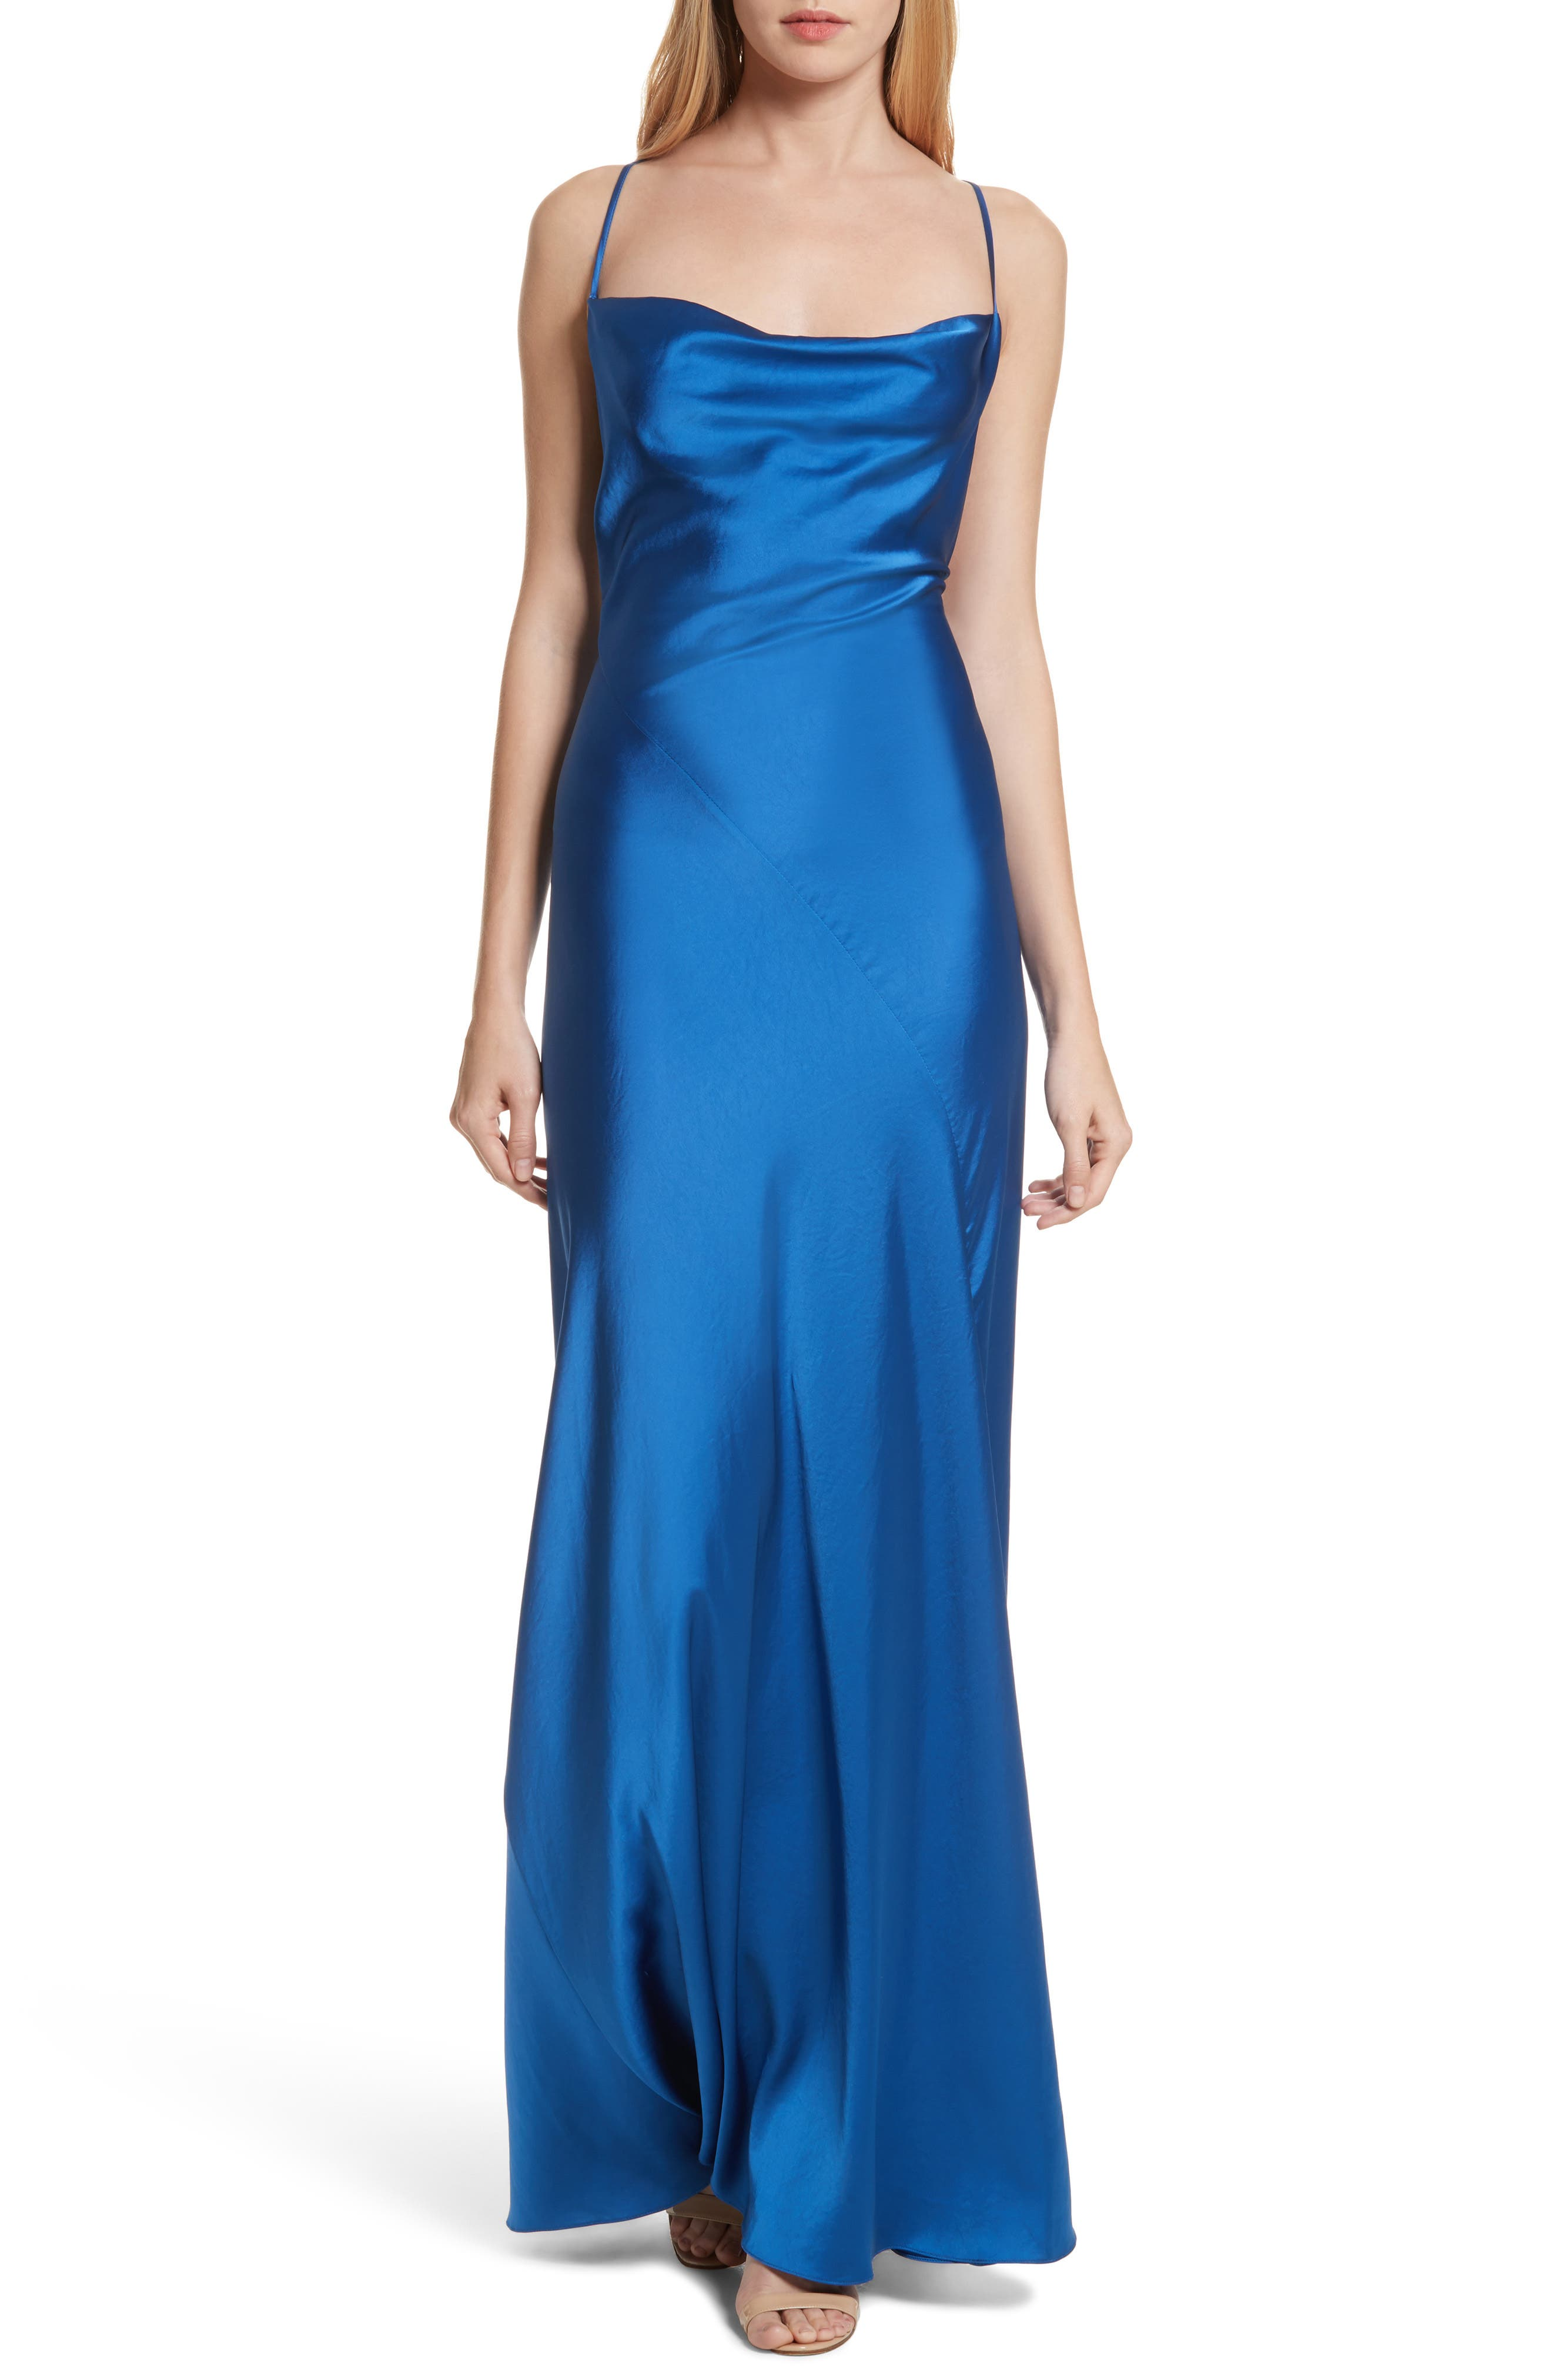 Diane von Furstenberg Open Back A-Line Gown,                             Main thumbnail 1, color,